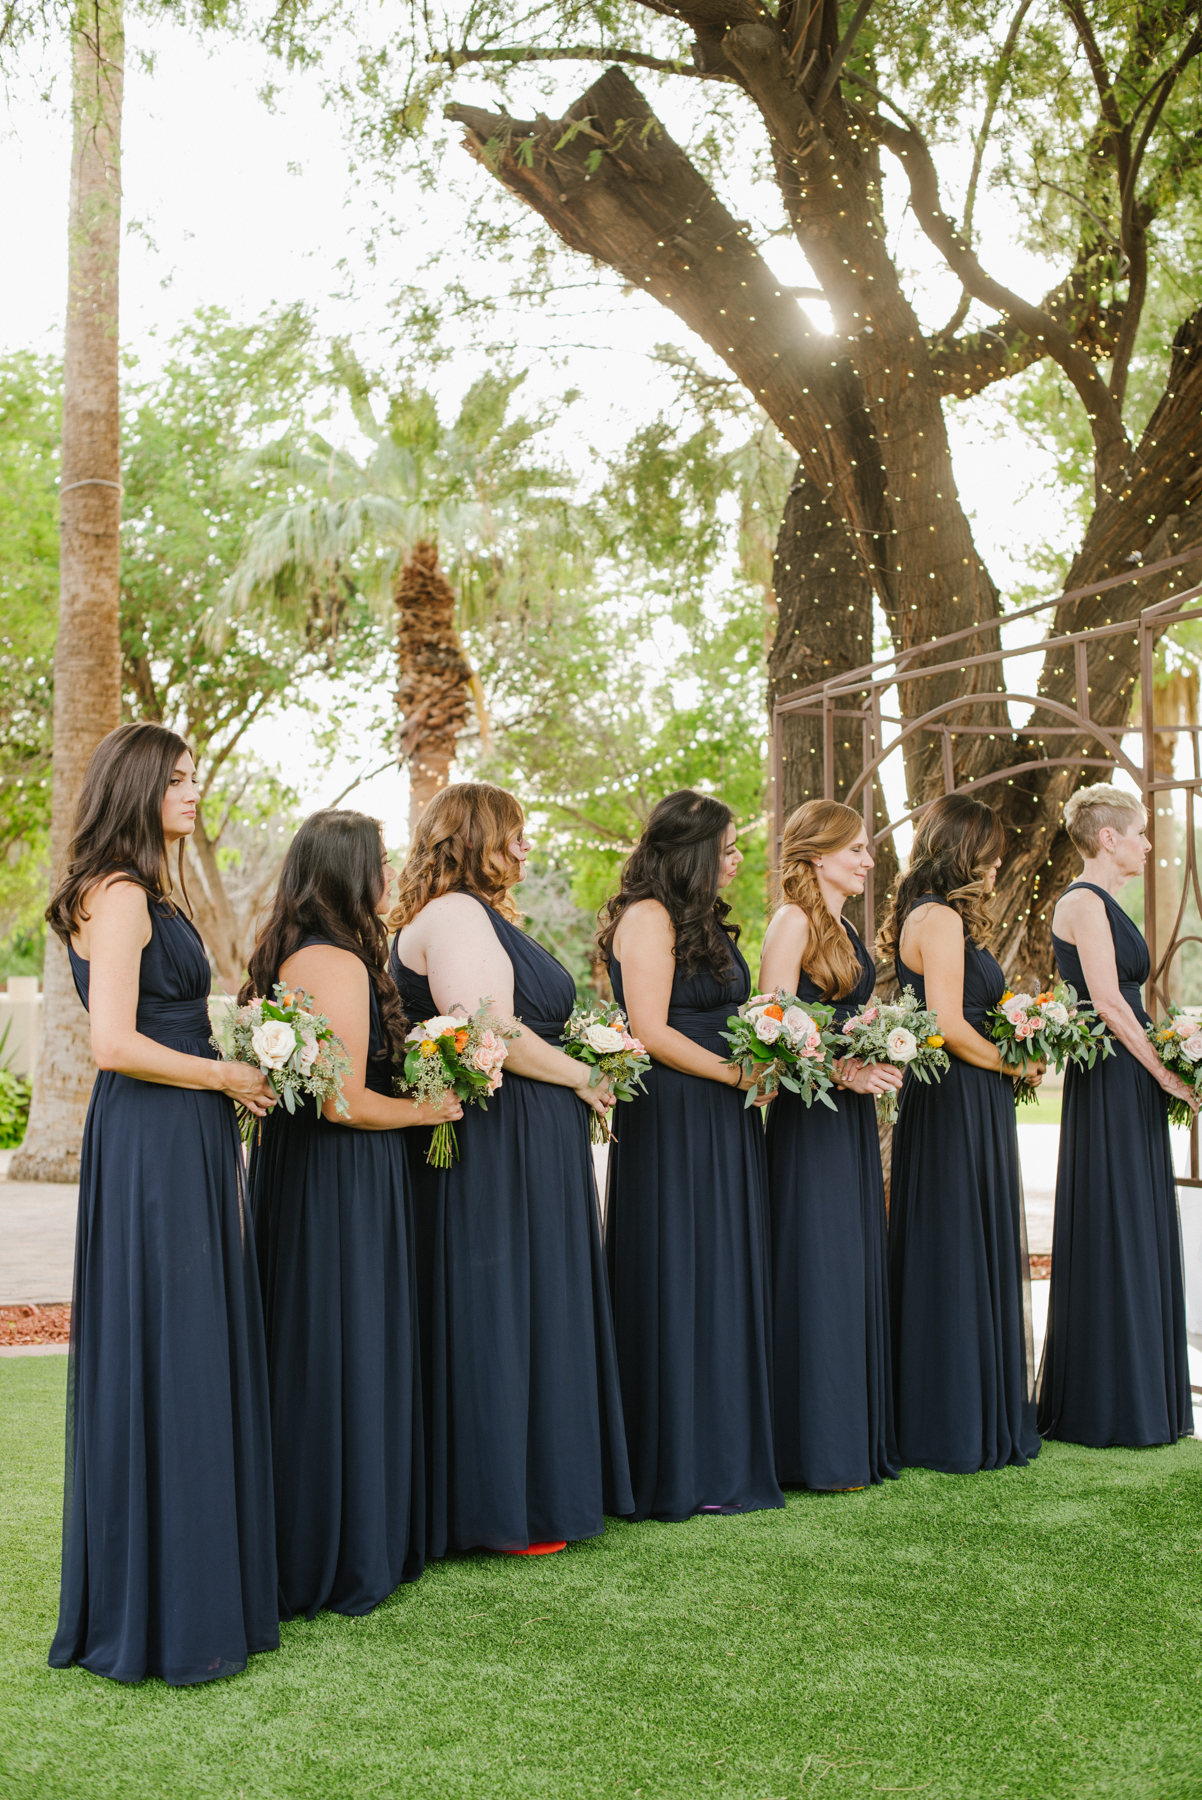 Secret Garden Event Center Wedding - Meredith Amadee Photography-95.jpg